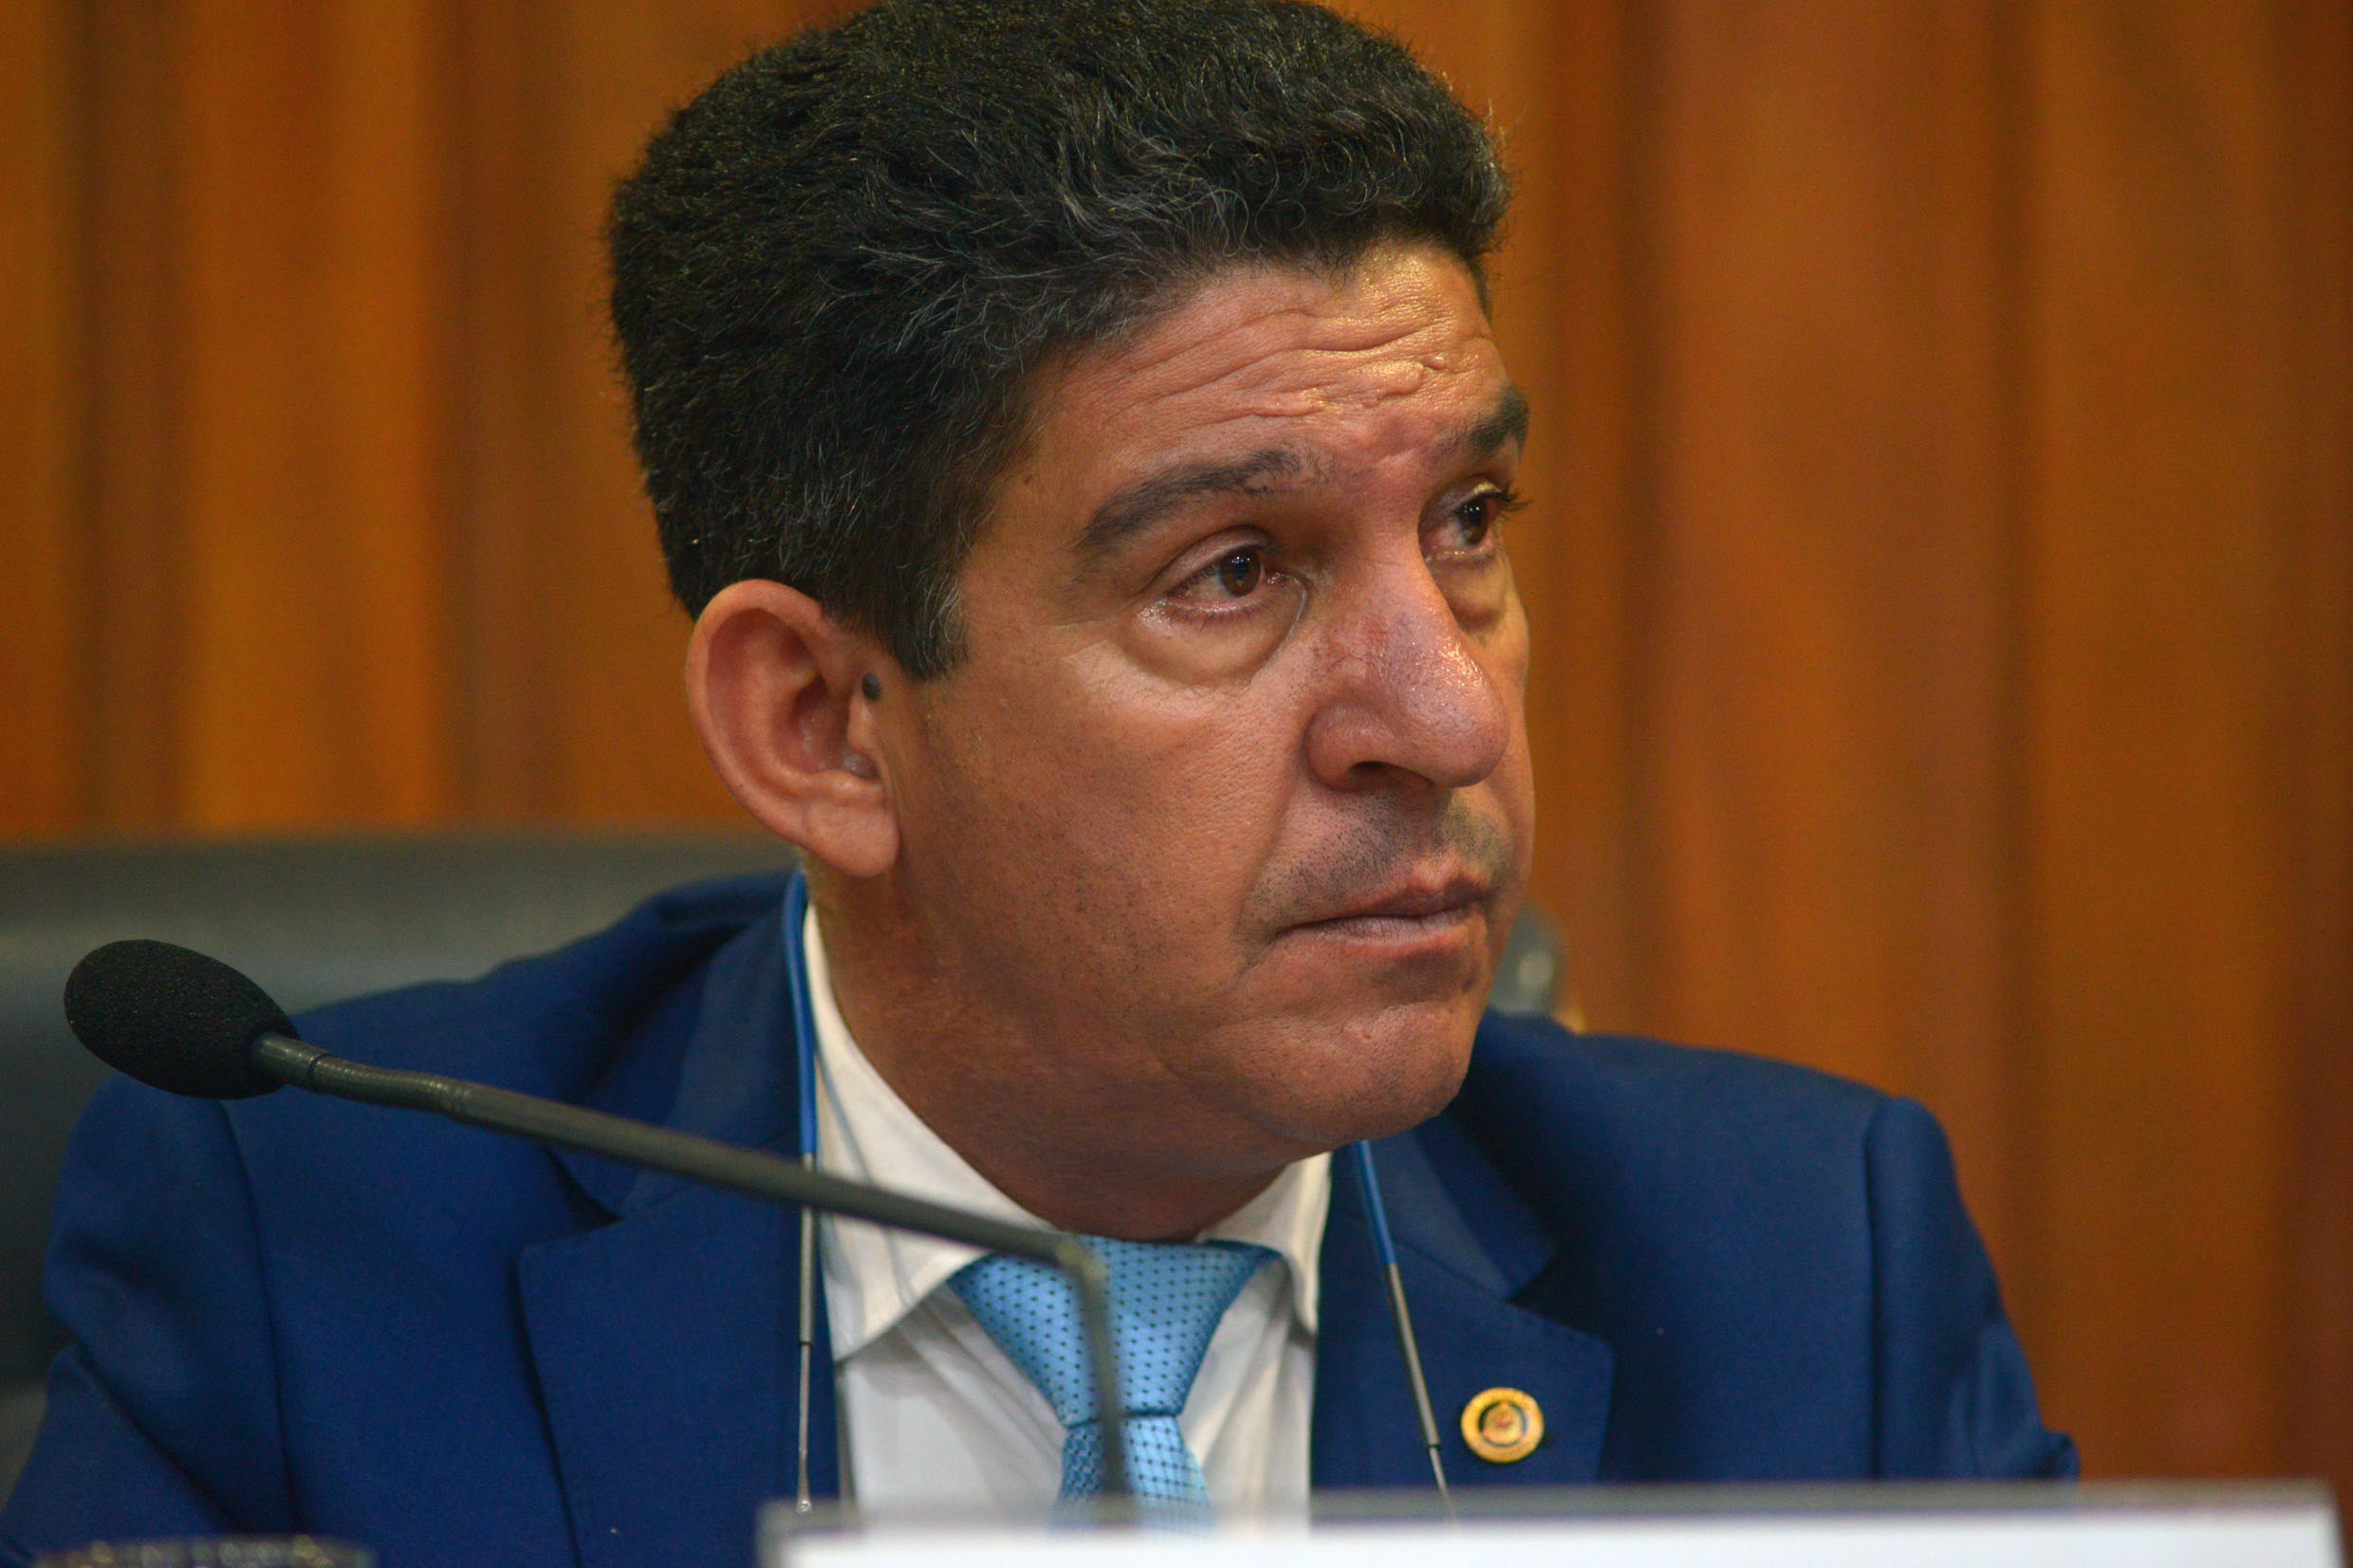 Gileno Gomes<a style='float:right' href='https://www3.al.sp.gov.br/repositorio/noticia/N-03-2018/fg219319.jpg' target=_blank><img src='/_img/material-file-download-white.png' width='14px' alt='Clique para baixar a imagem'></a>